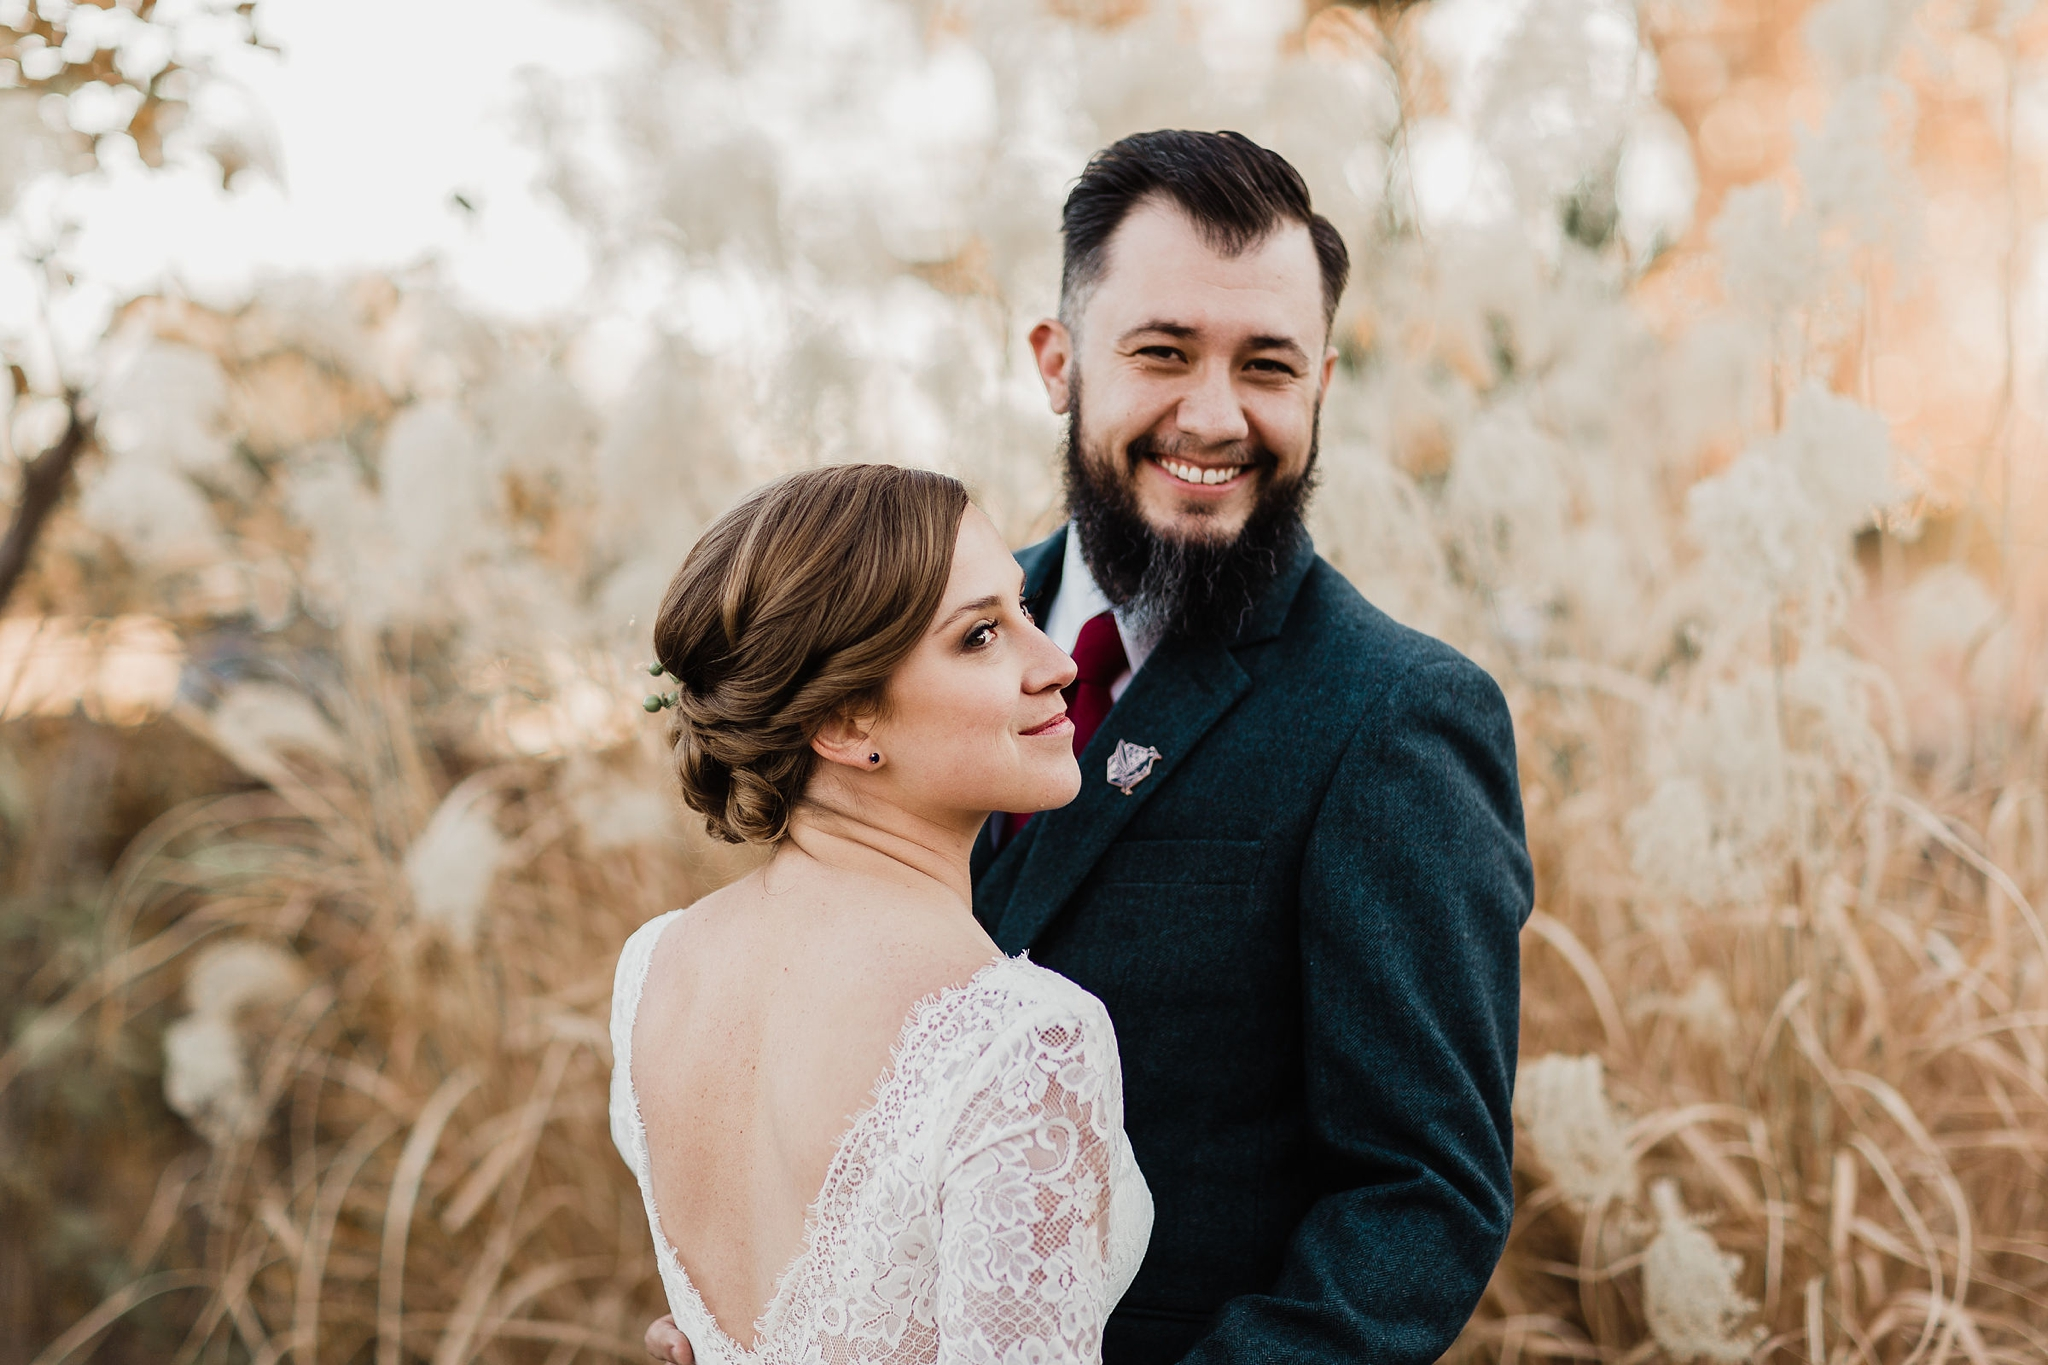 Alicia+lucia+photography+-+albuquerque+wedding+photographer+-+santa+fe+wedding+photography+-+new+mexico+wedding+photographer+-+new+mexico+wedding+-+santa+fe+wedding+-+albuquerque+wedding+-+bridal+hair_0004.jpg